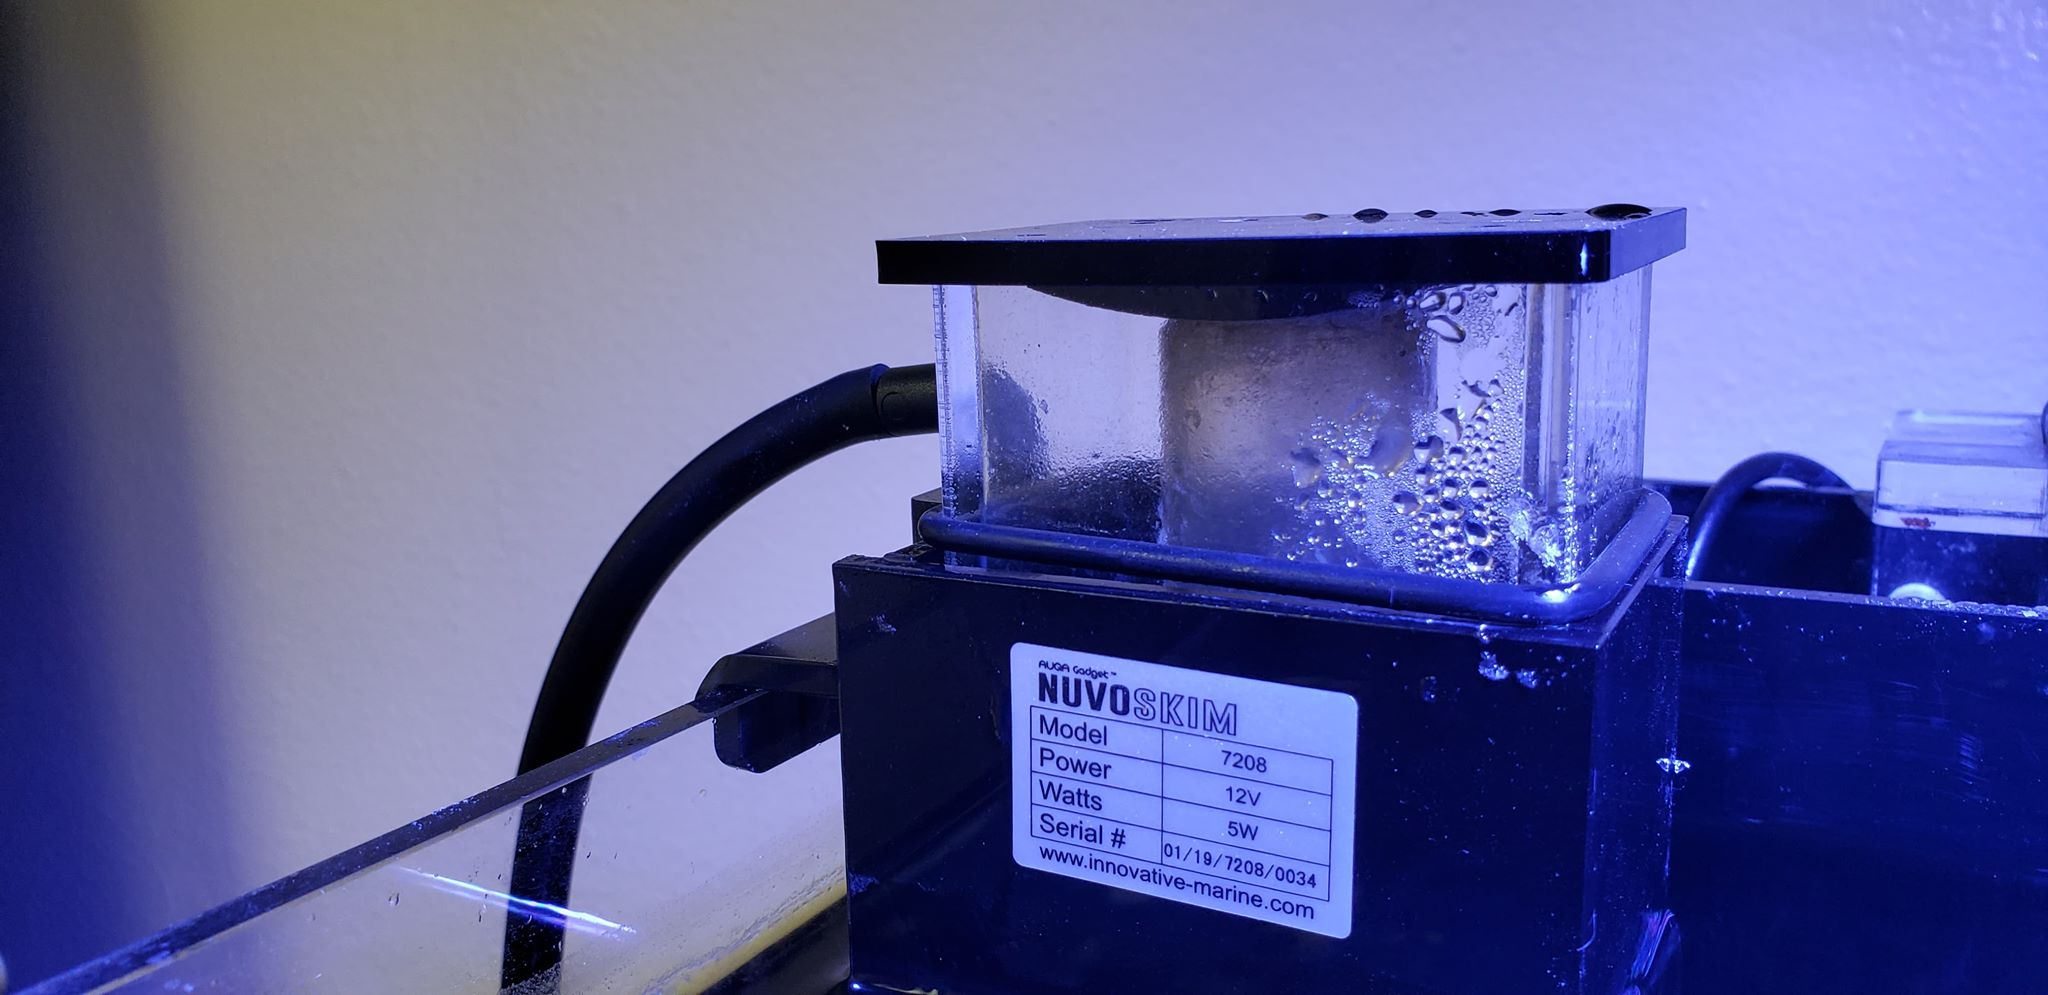 The NuvoSkim DC Universal is Innovative Marine's First Nano Protein Skimmer Built Specifically For Aquariums From Other Brands